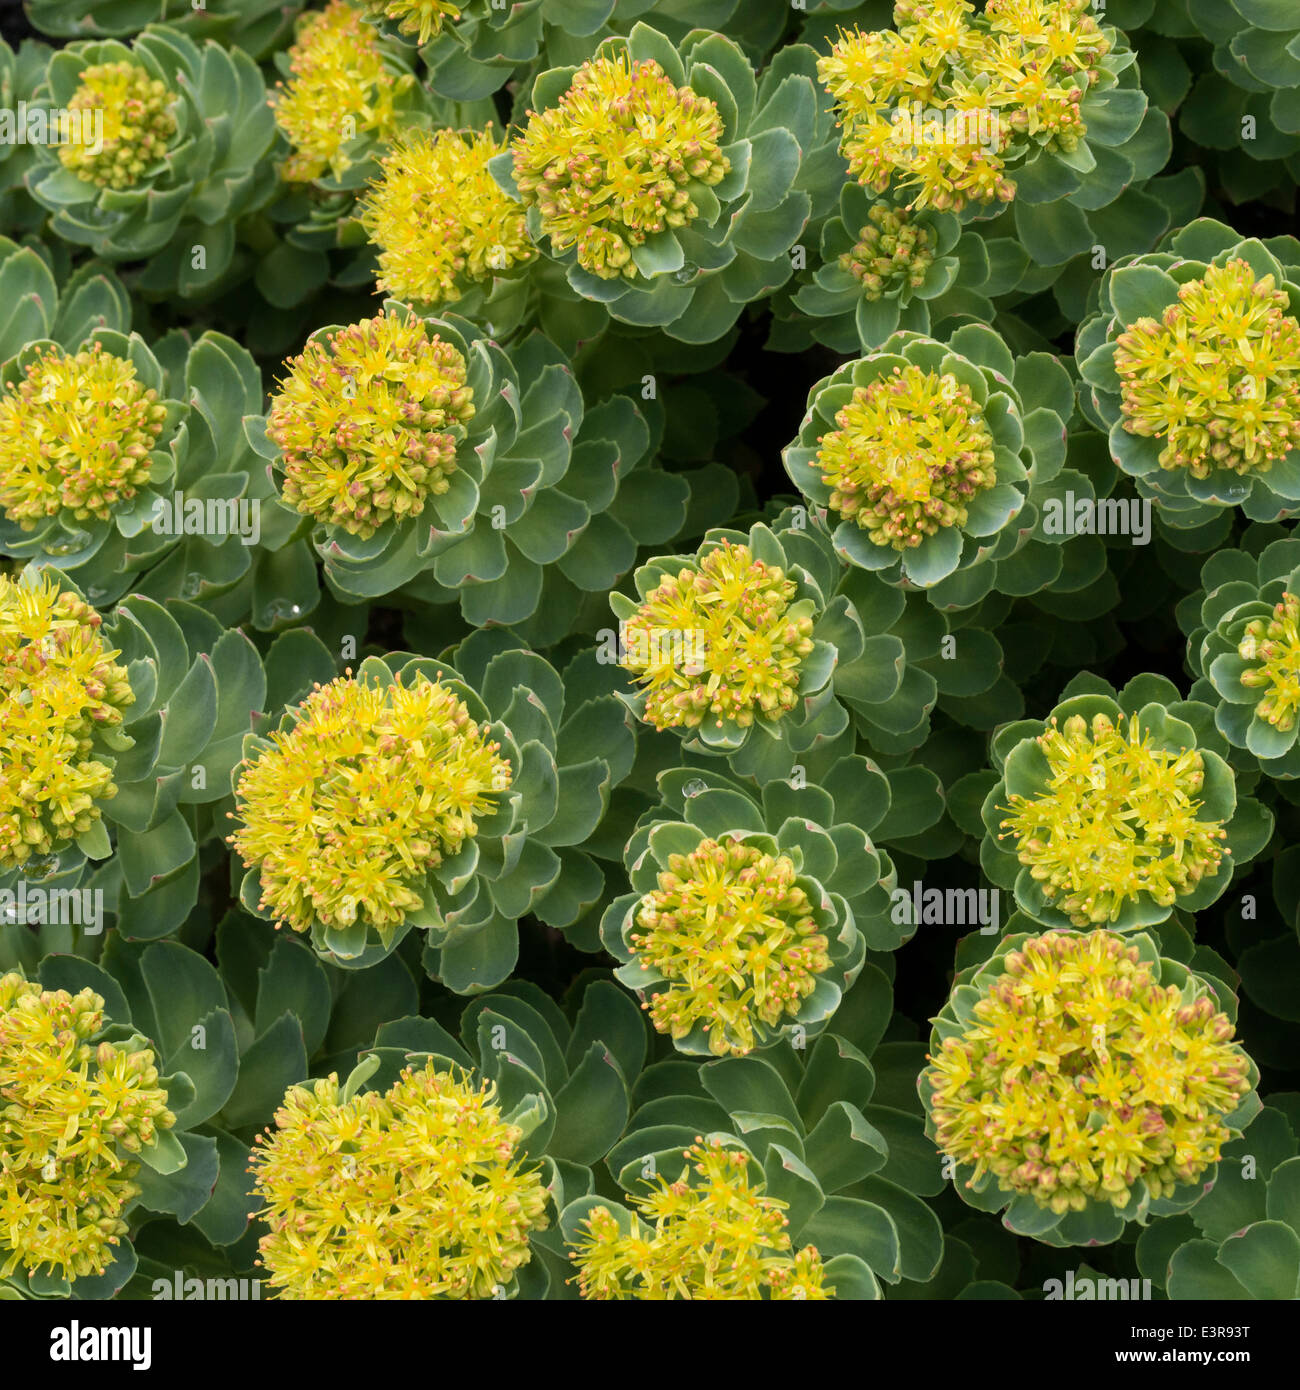 Yellow flowering Rhodiola rosea Roseroot plant growing on rocky